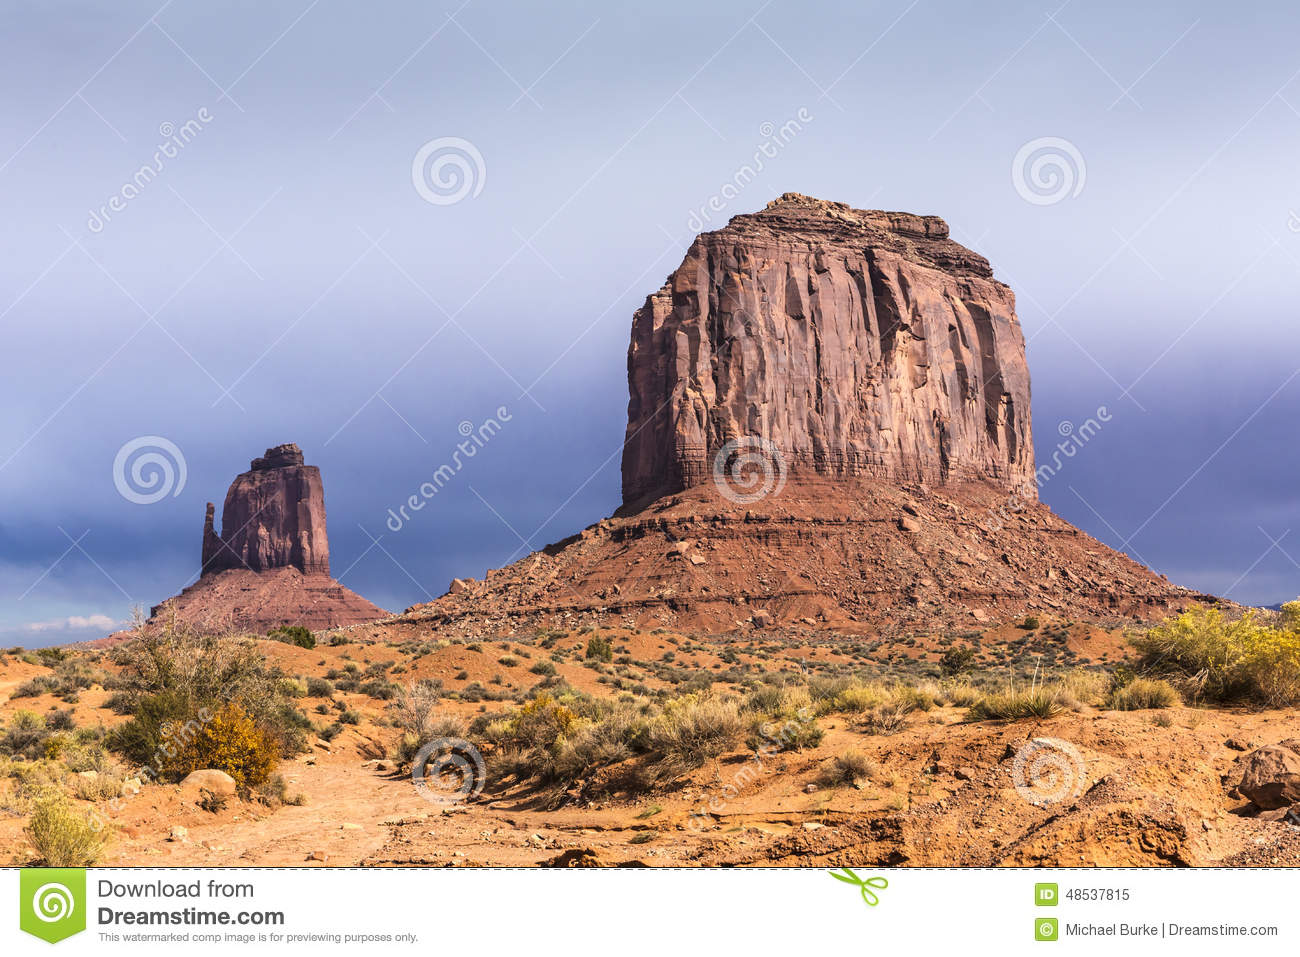 Colorado Plateau clipart #18, Download drawings